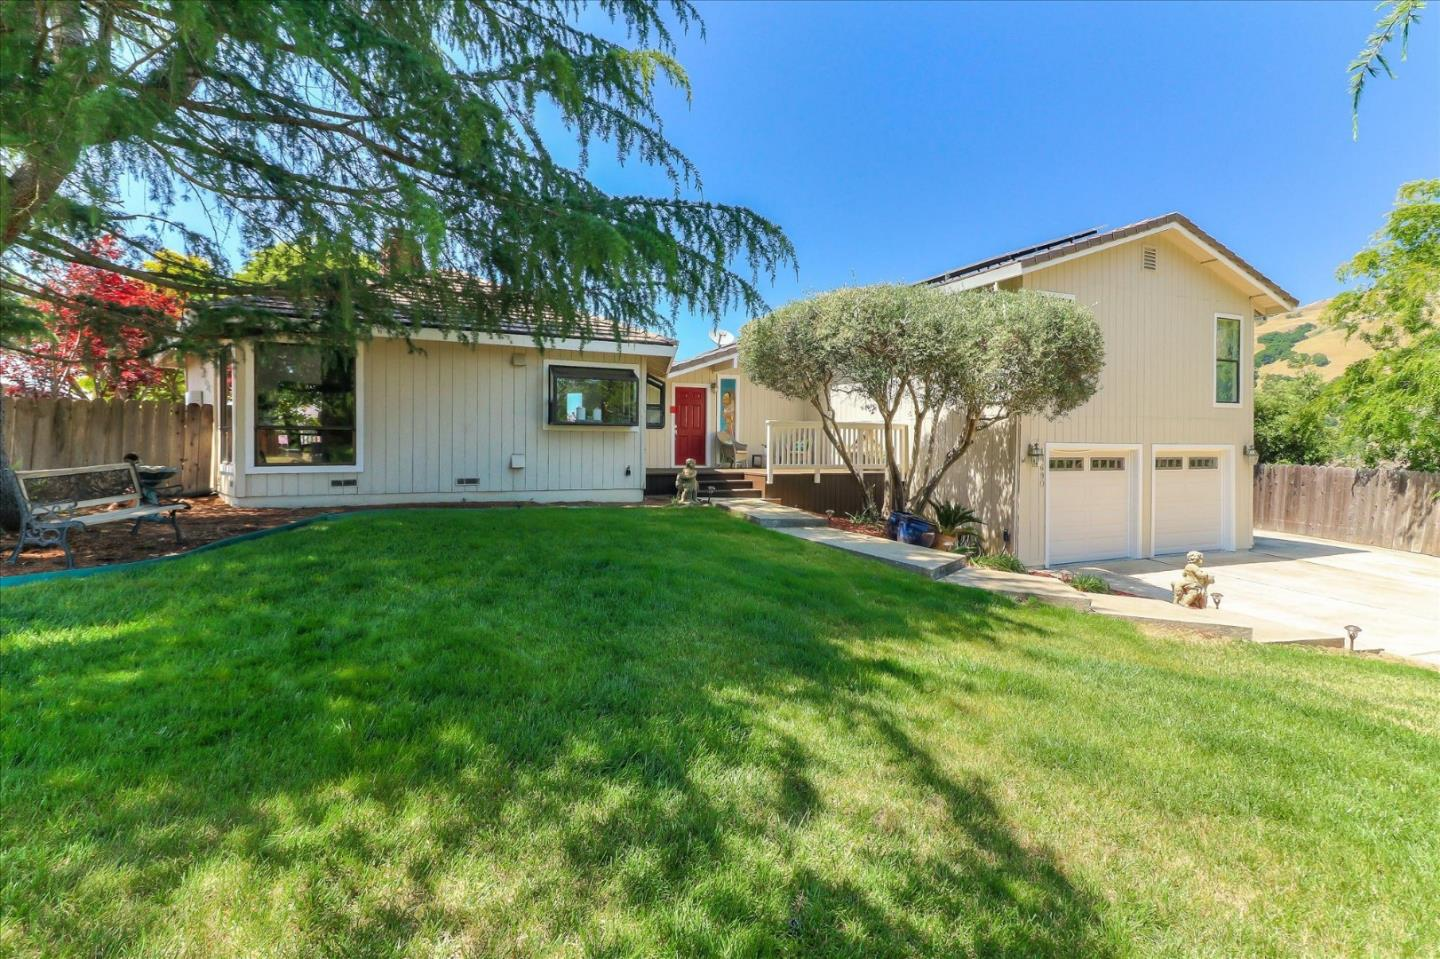 15690 Oakridge CT 95037 - One of Morgan Hill Homes for Sale